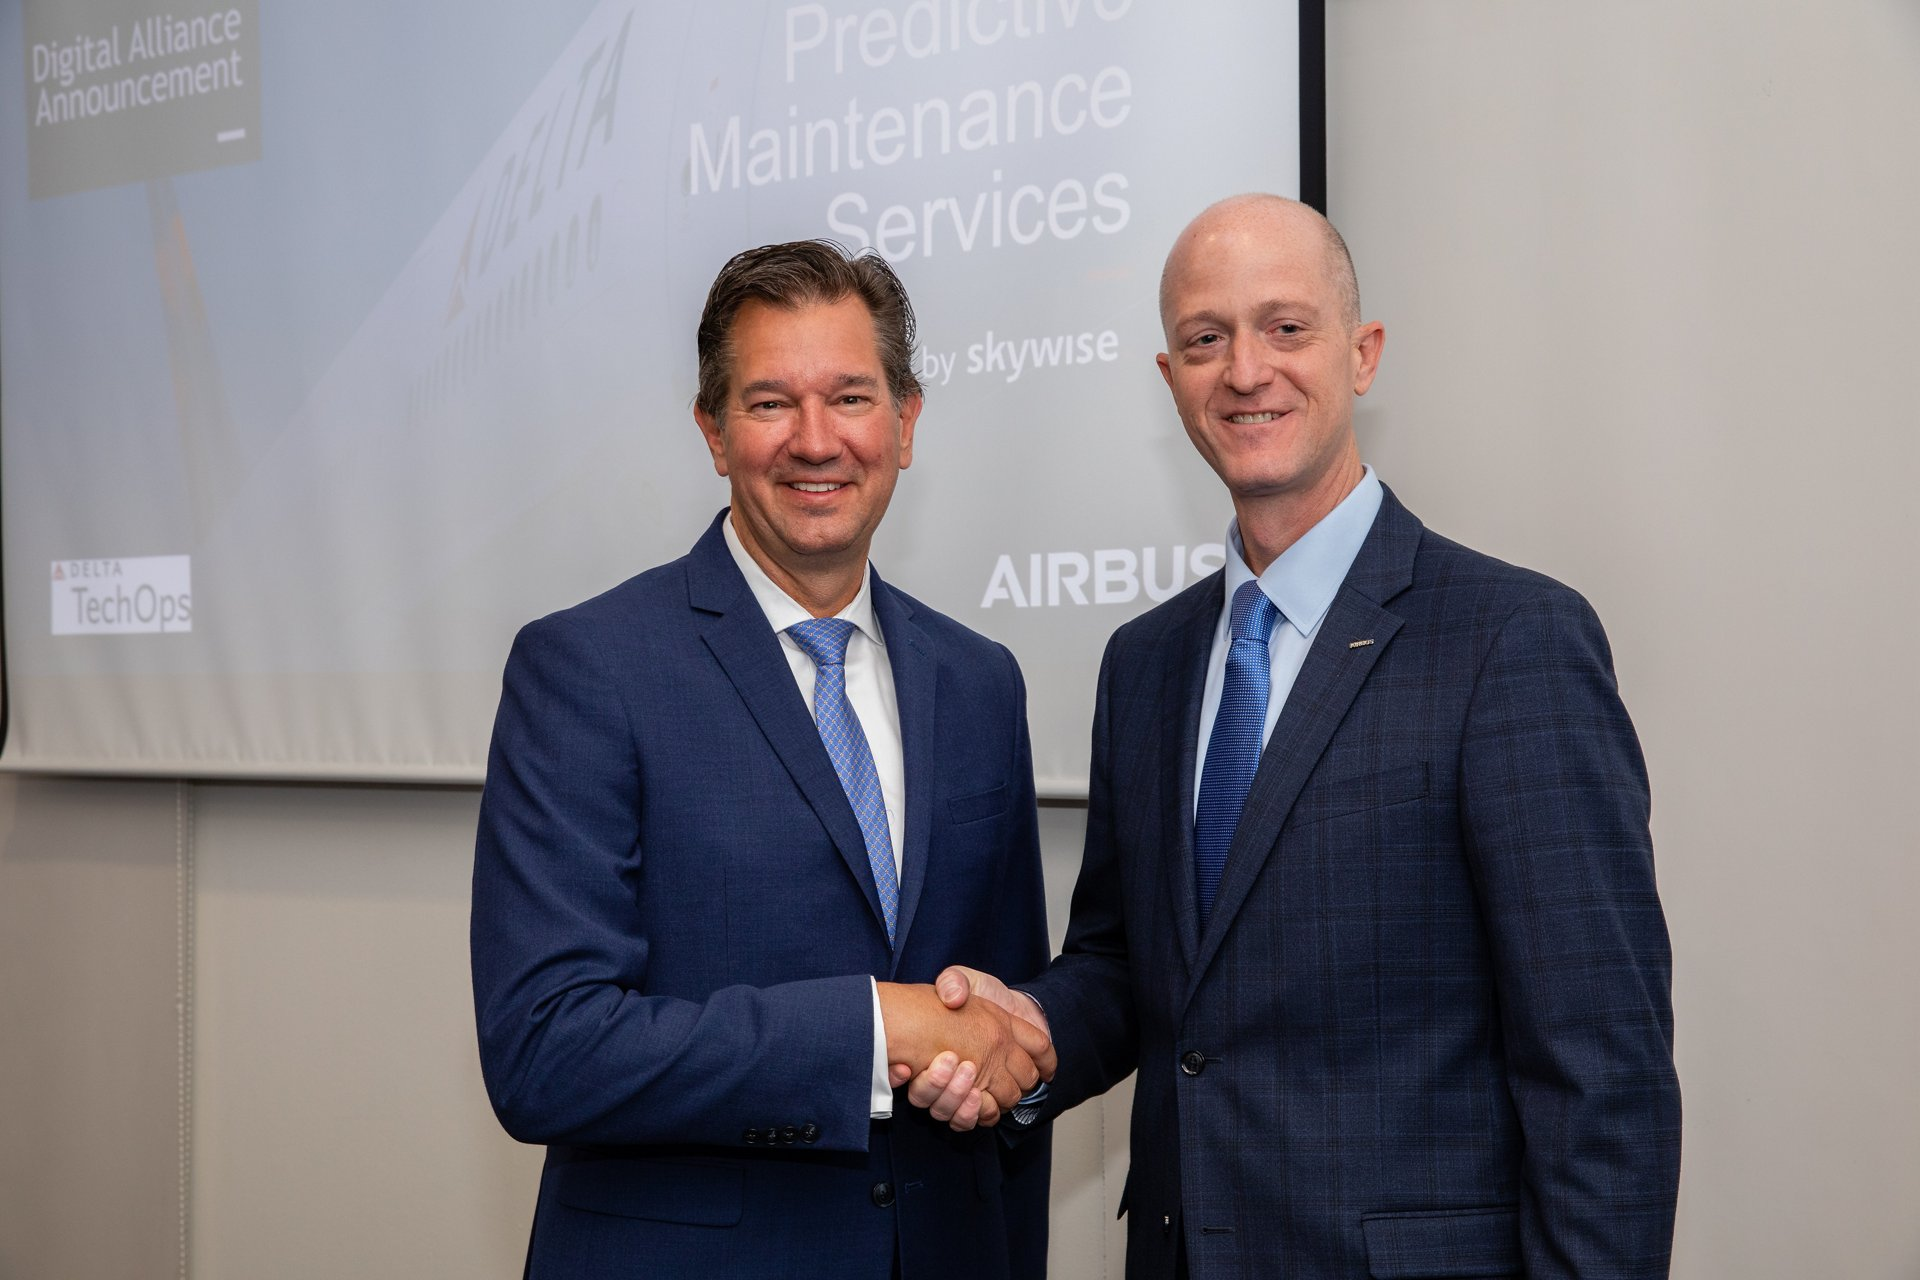 Airbus and Delta Air Lines' digital alliance to develop new predictive maintenance and health-monitoring solutions for airline customers – announced in October 2019 – is marked by Don Mitacek, SVP Technical Operations, Delta Air Lines; and Norman Baker, SVP Digital Solutions, Airbus